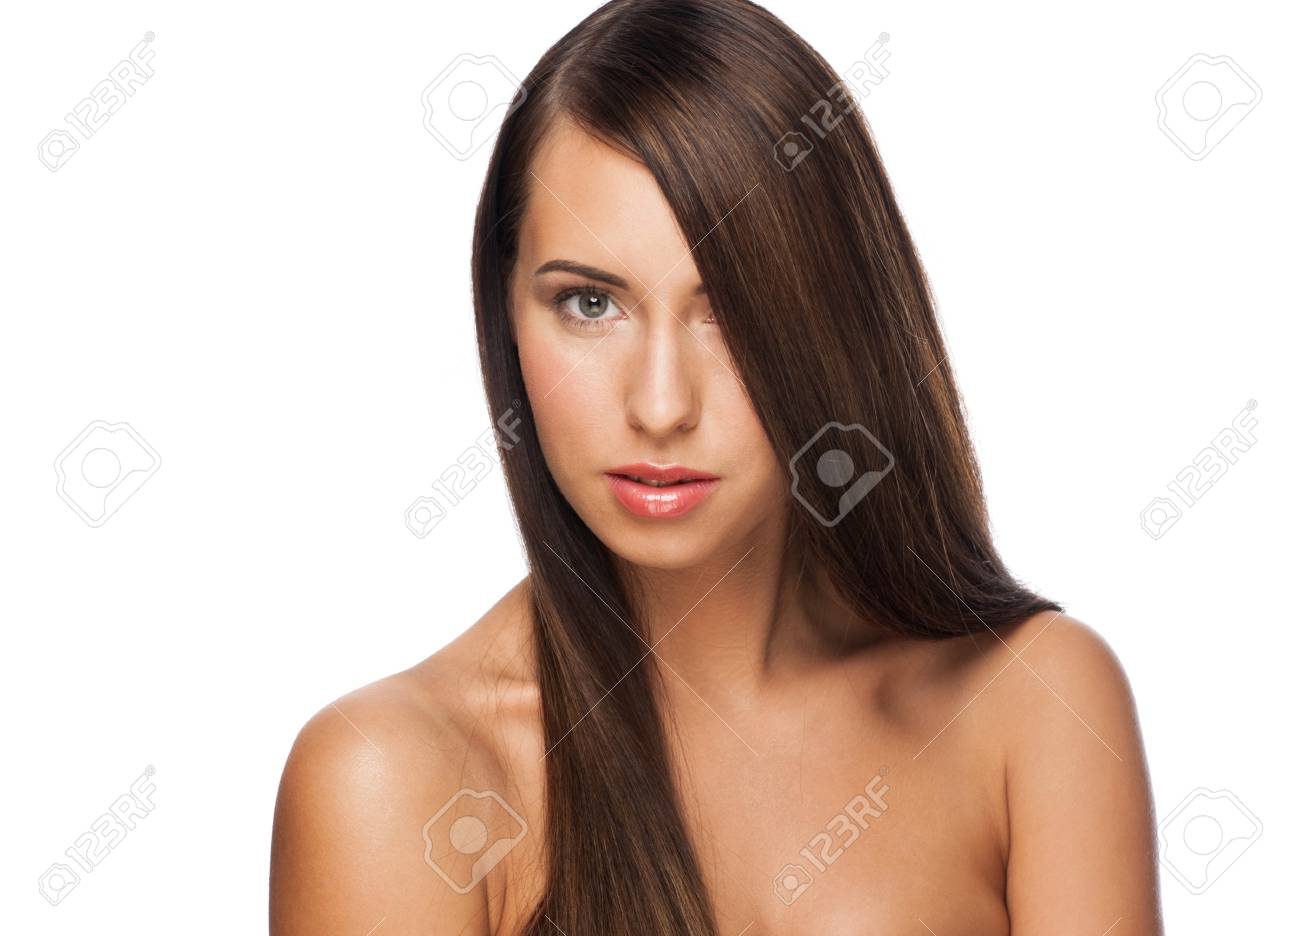 Pretty young woman with long straight brown hair looking at camera, isolated on white background Stock Photo - 16802768